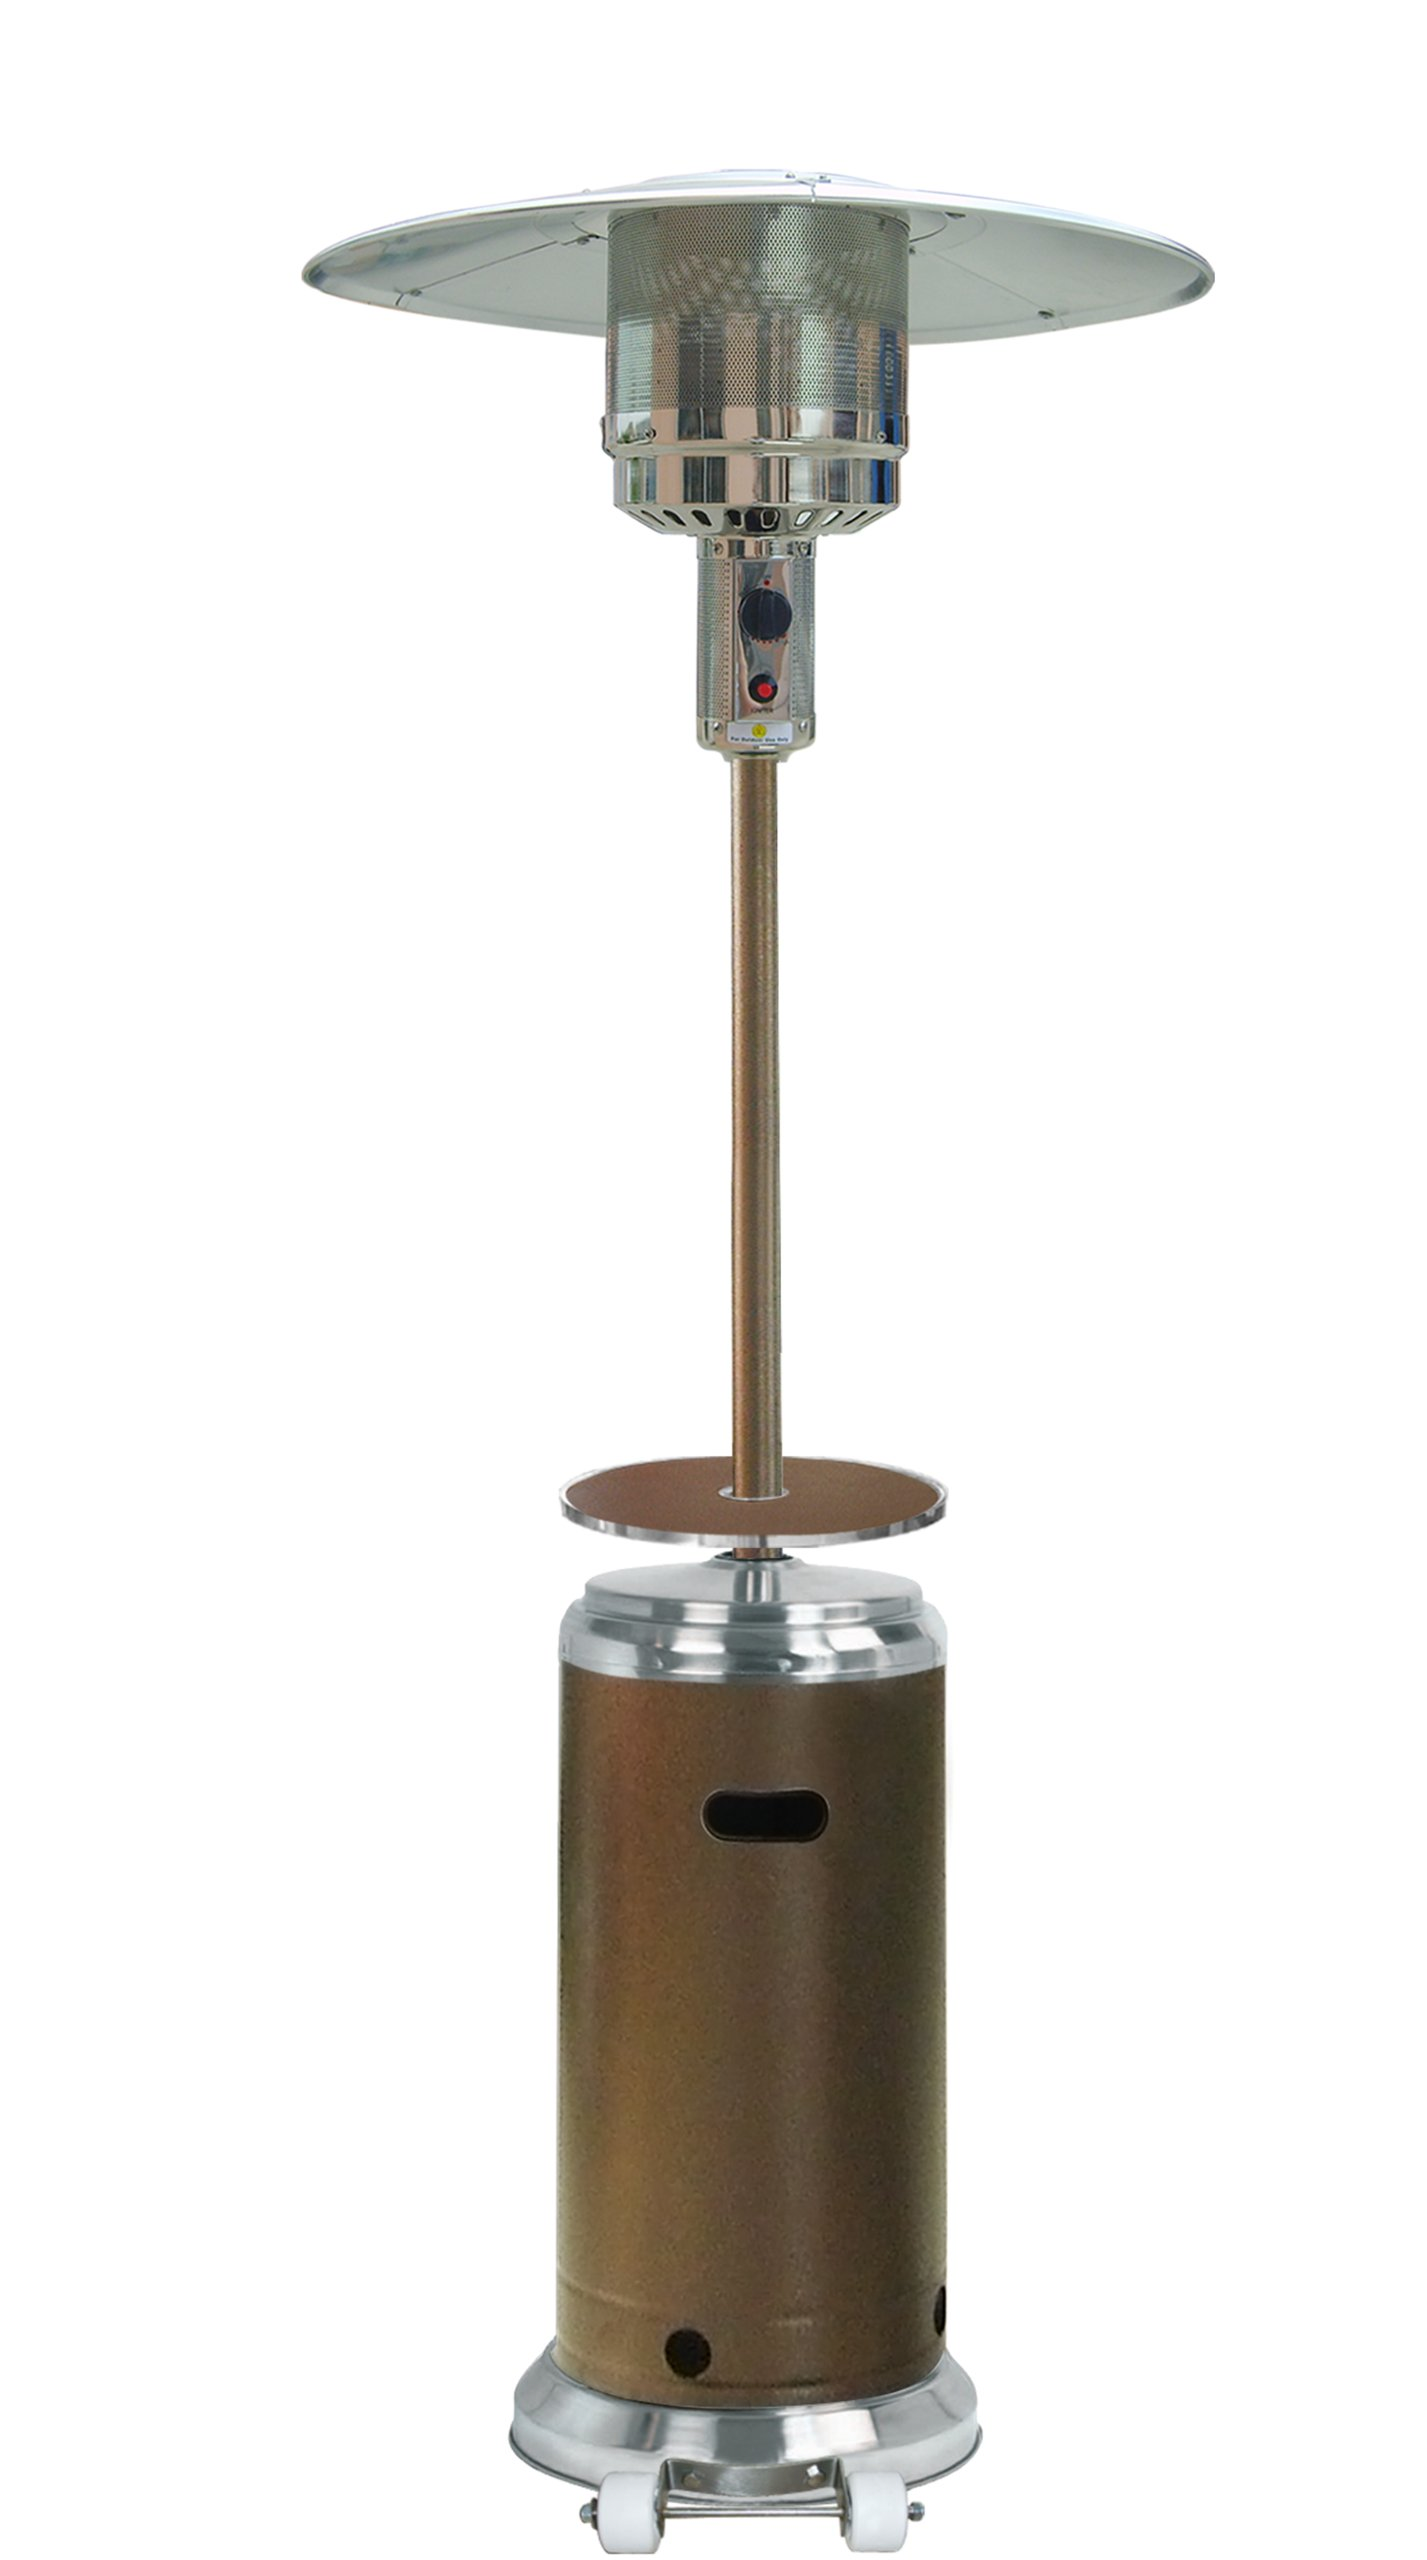 Hiland HLDS01-SSHGT 48,000 BTU Propane Patio Heater w/Wheels and Table, Large, Hammered Bronze/SS by Hiland